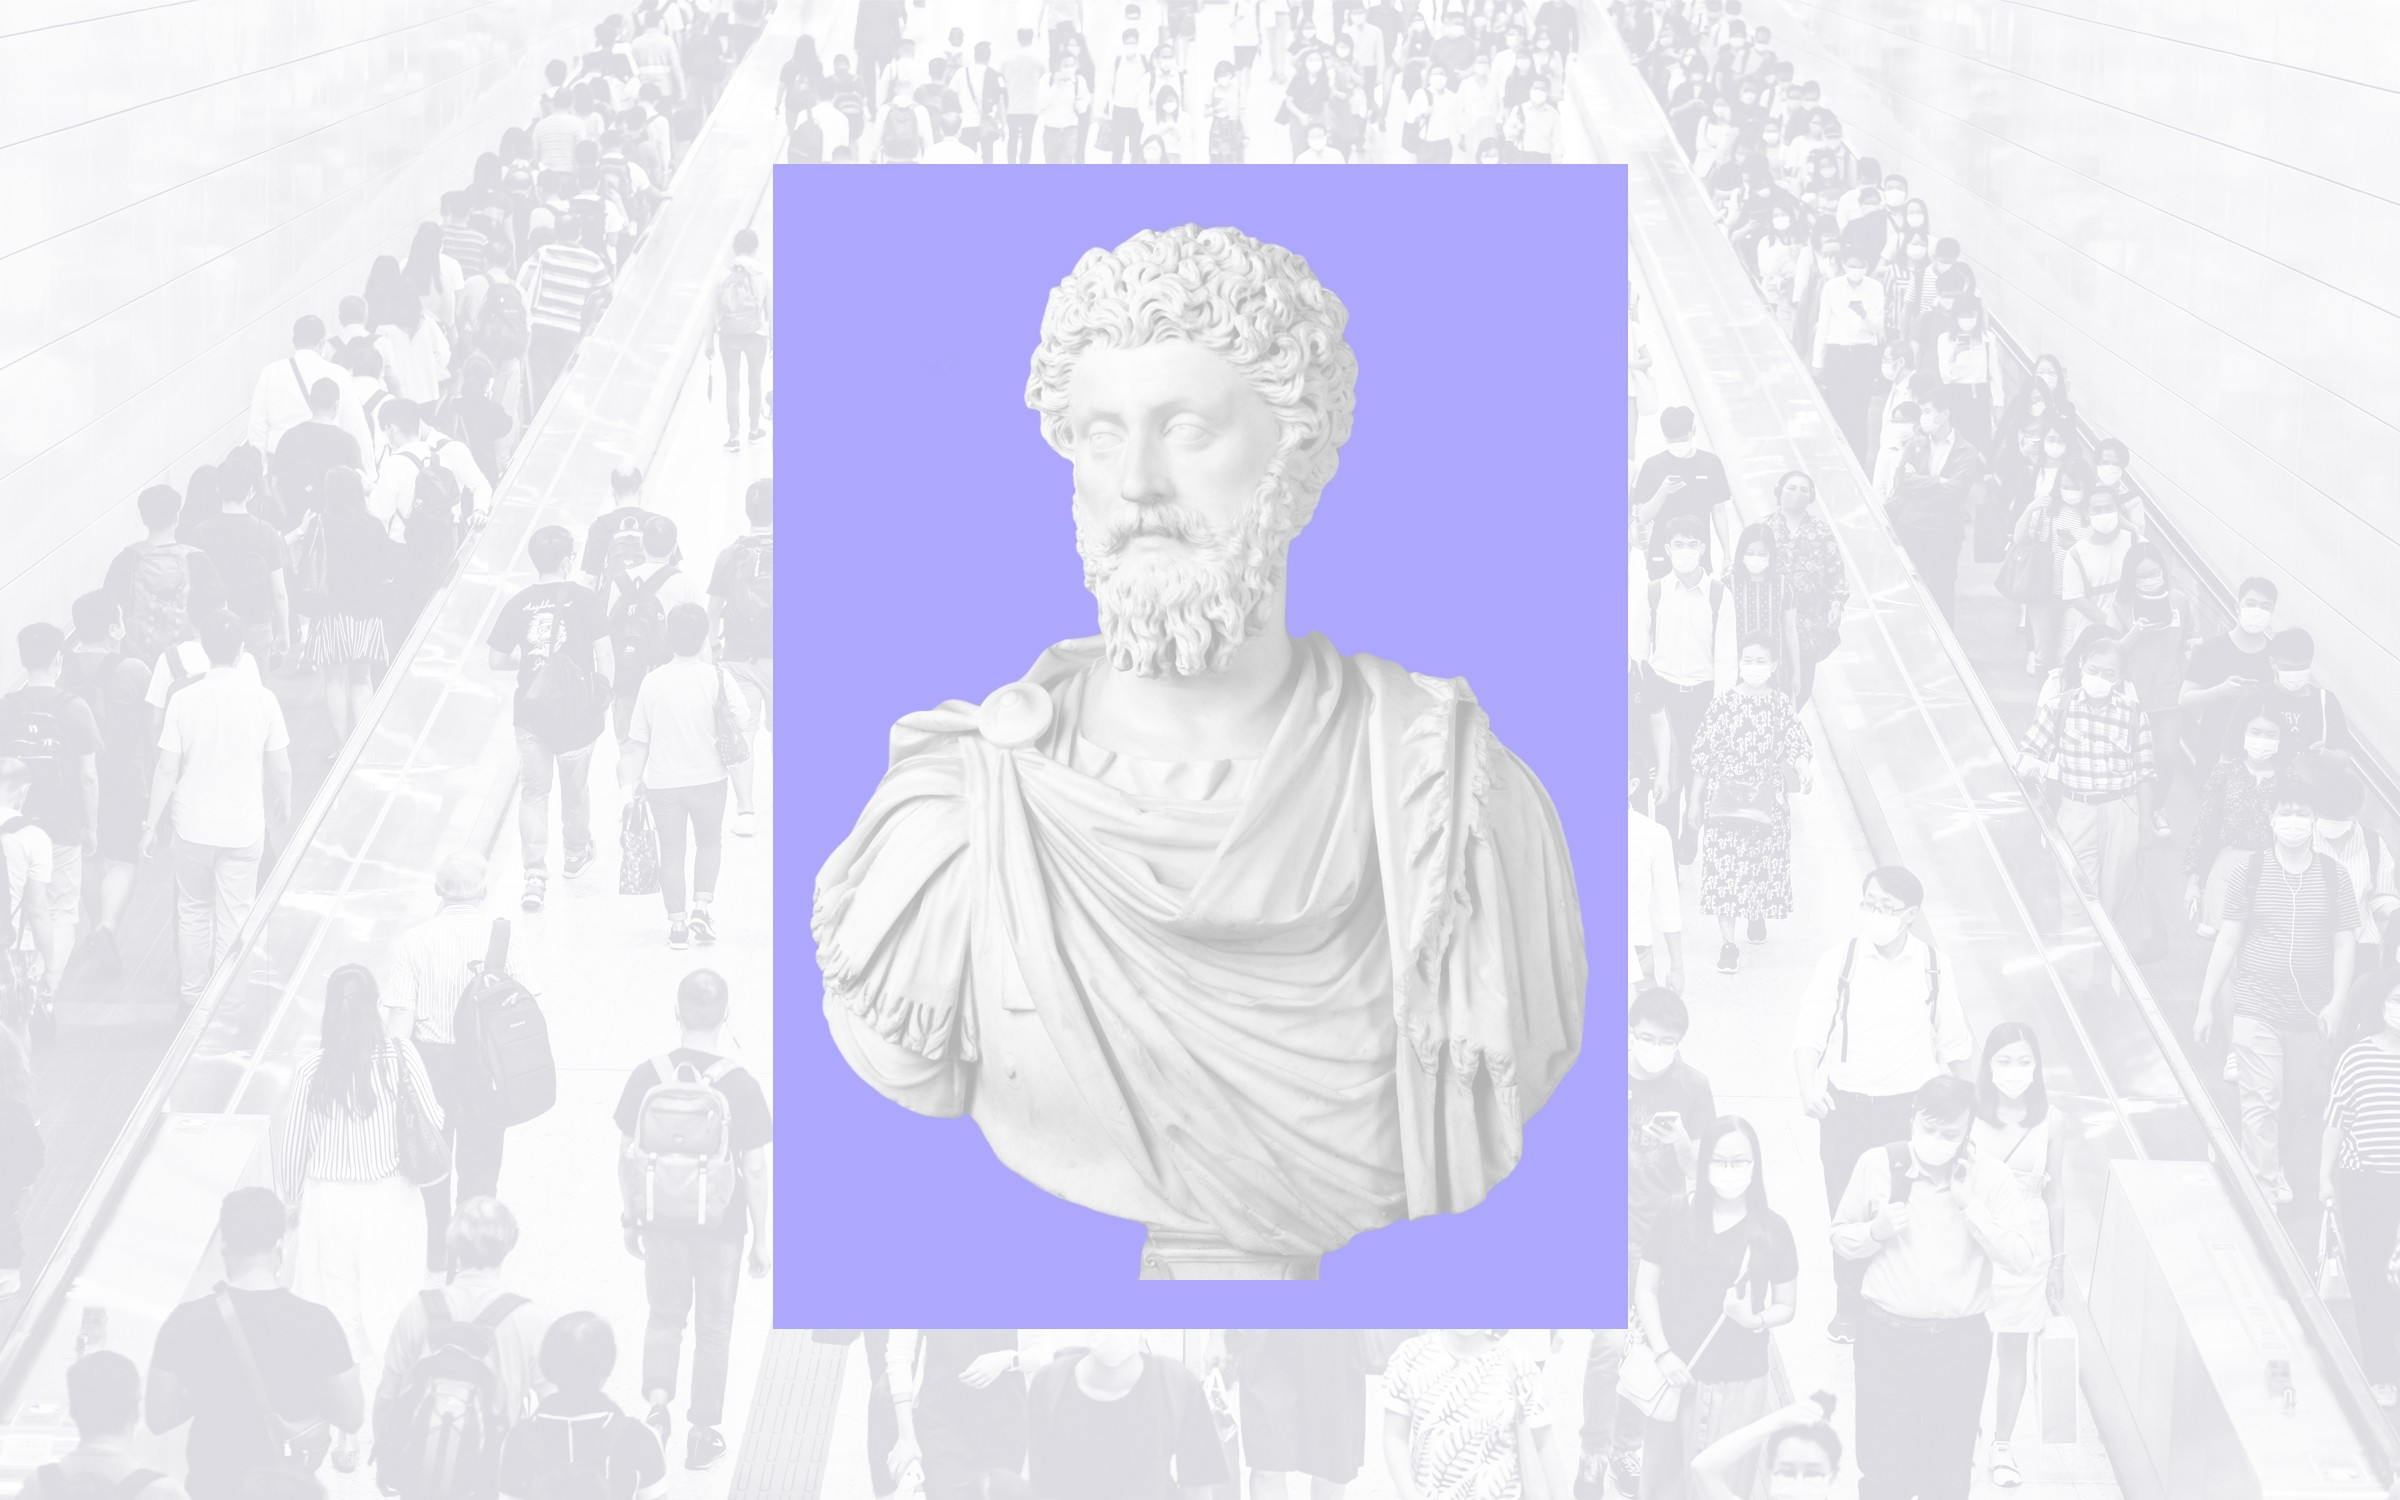 Bust of Roman Emperor and Stoic philosopher Marcus Aurelius against a background of a crowd of people going up stairs.